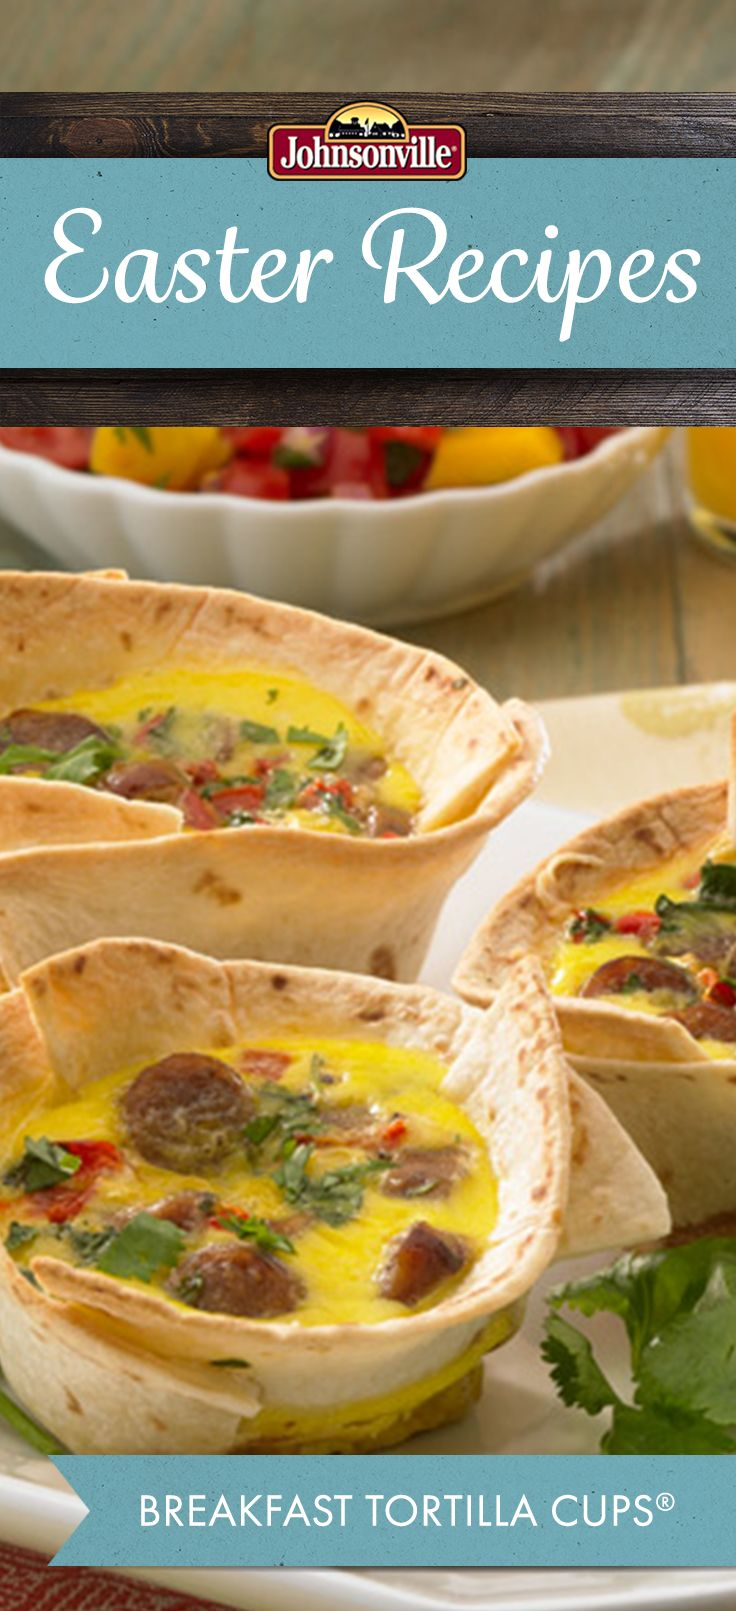 Whip these Breakfast Tortilla Cups up in 30 minutes or less! Everyone will love this perfectly portioned recipe.